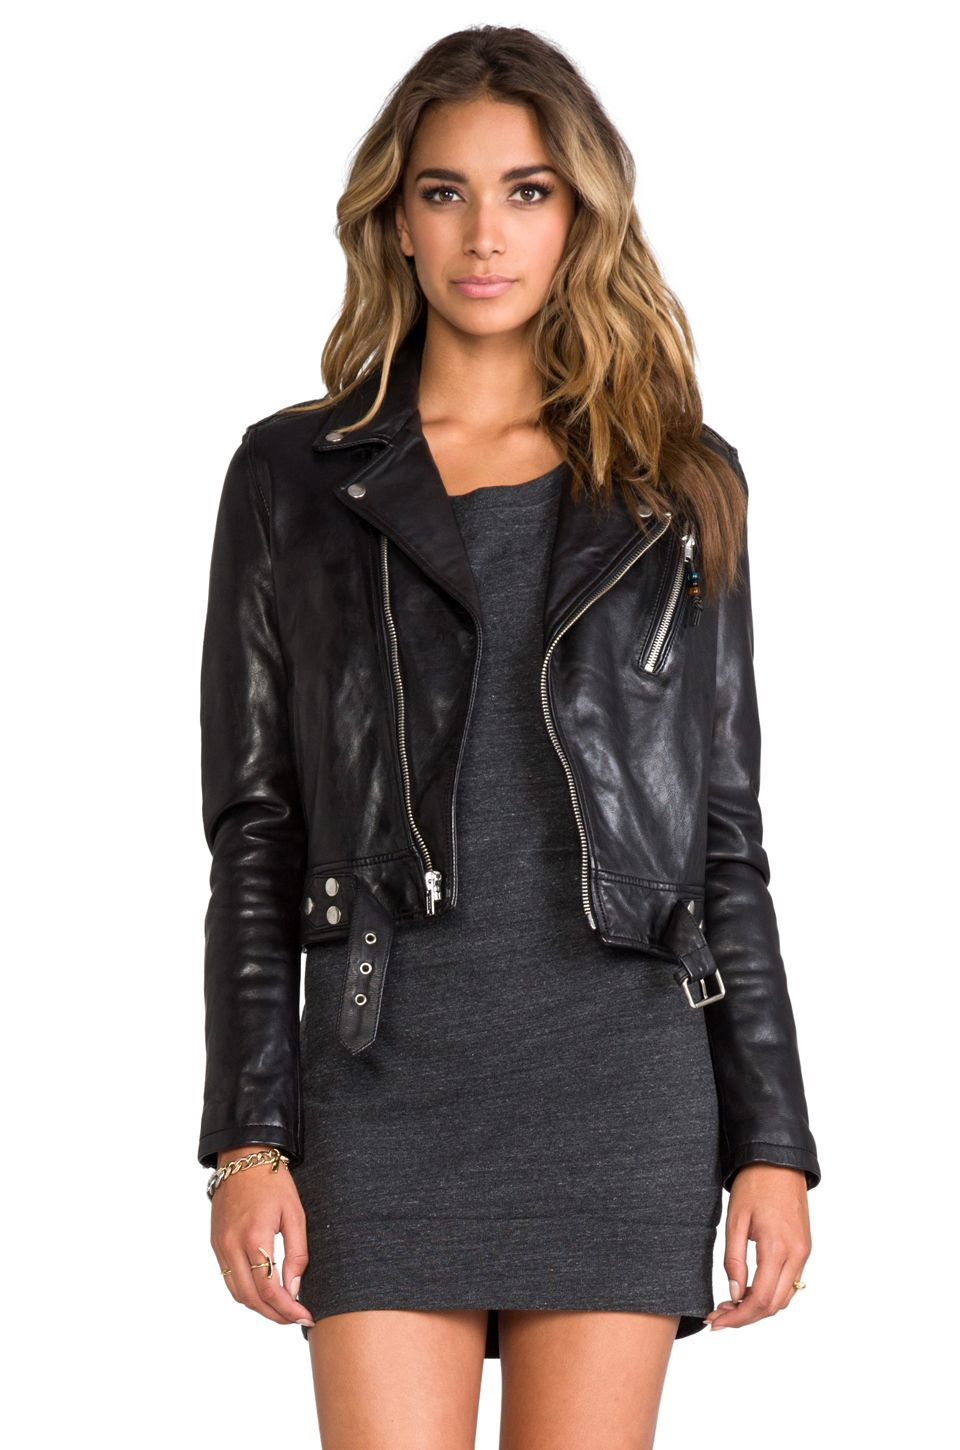 BLK DNM Leather Jacket 1 in Black from